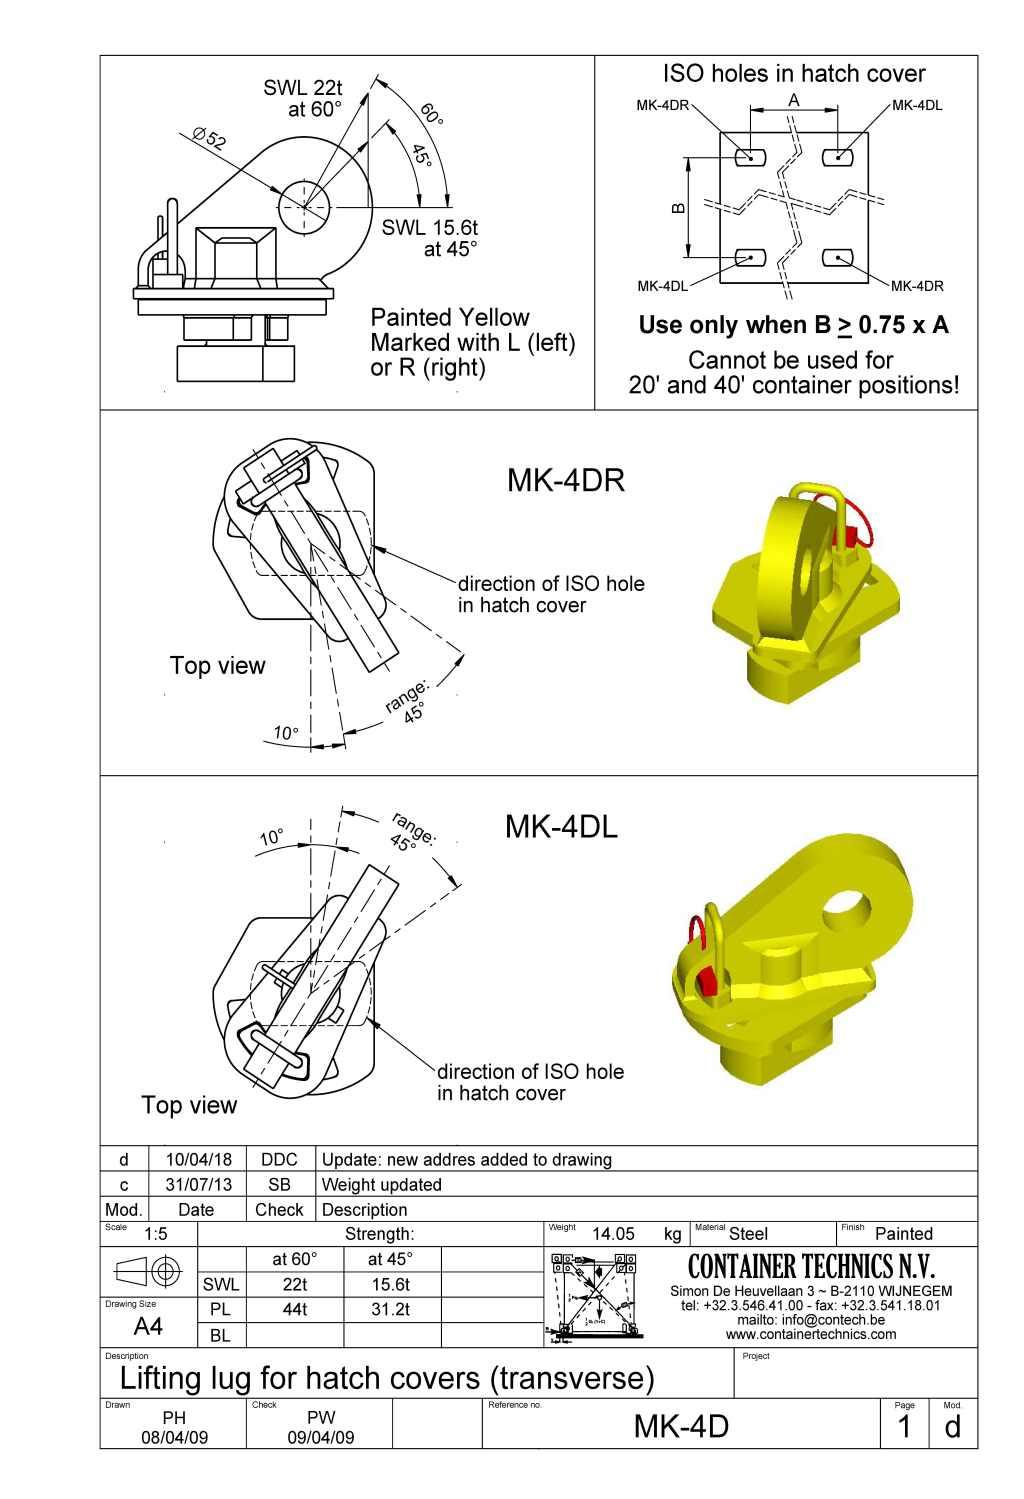 MK-4D traversal lifting lug for hatch cover